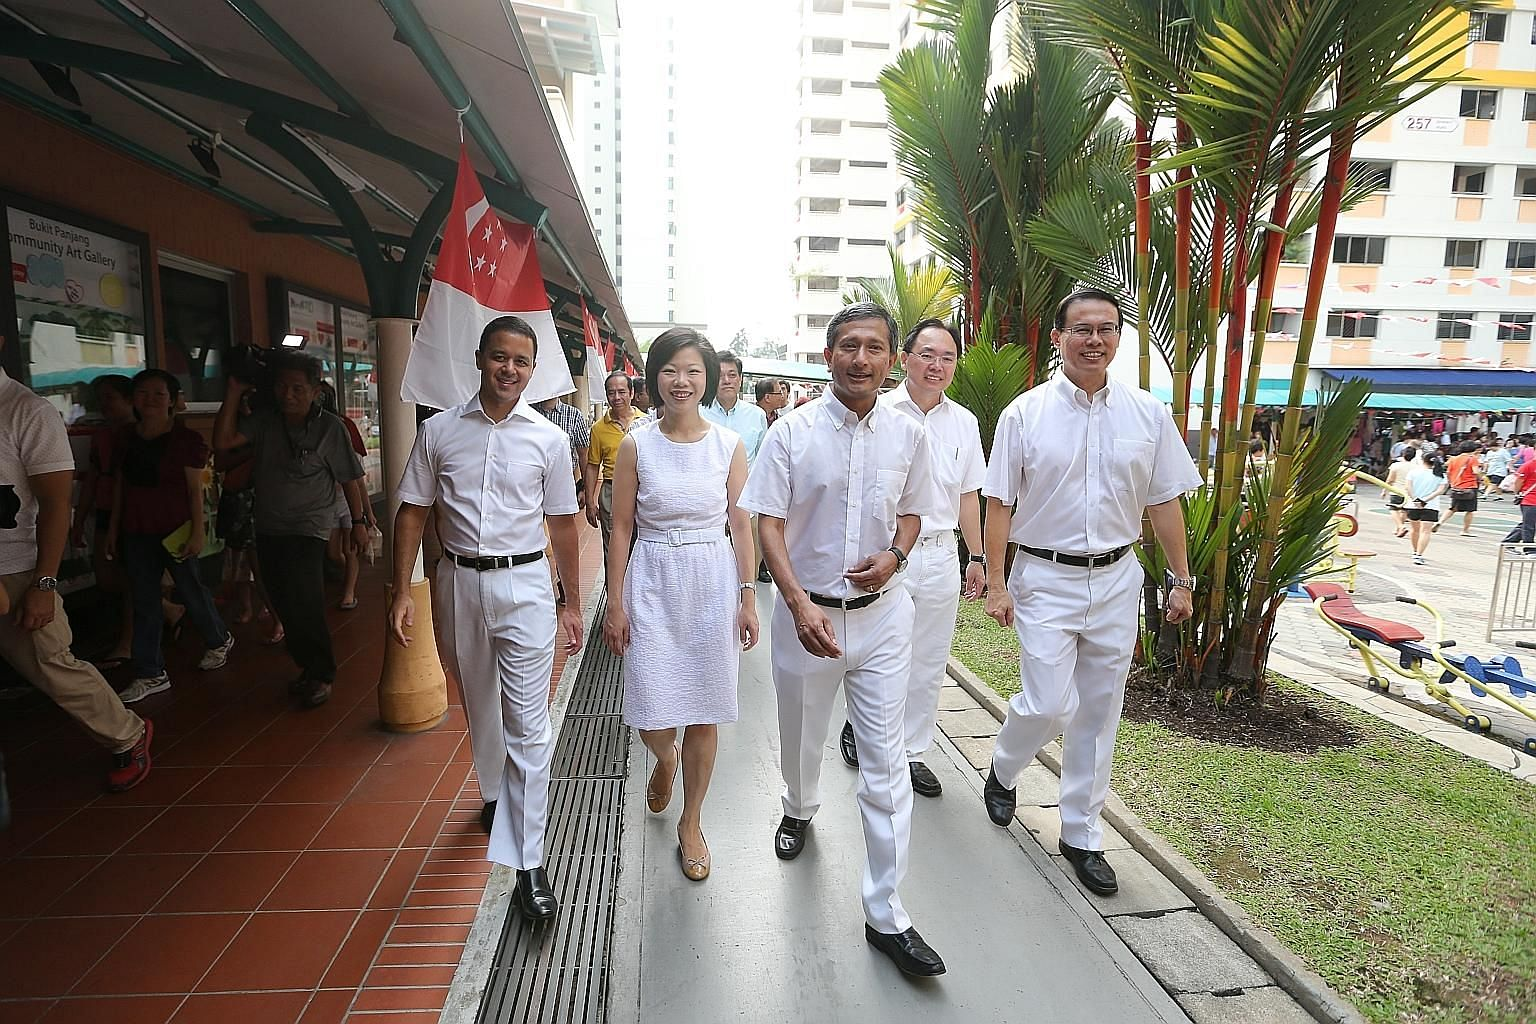 PAP MPs (from far left) Christopher de Souza, Sim Ann, Vivian Balakrishnan and Liang Eng Hwa will defend their seats in Holland-Bukit Timah GRC. Dr Teo Ho Pin (right) will also defend Bukit Panjang SMC.